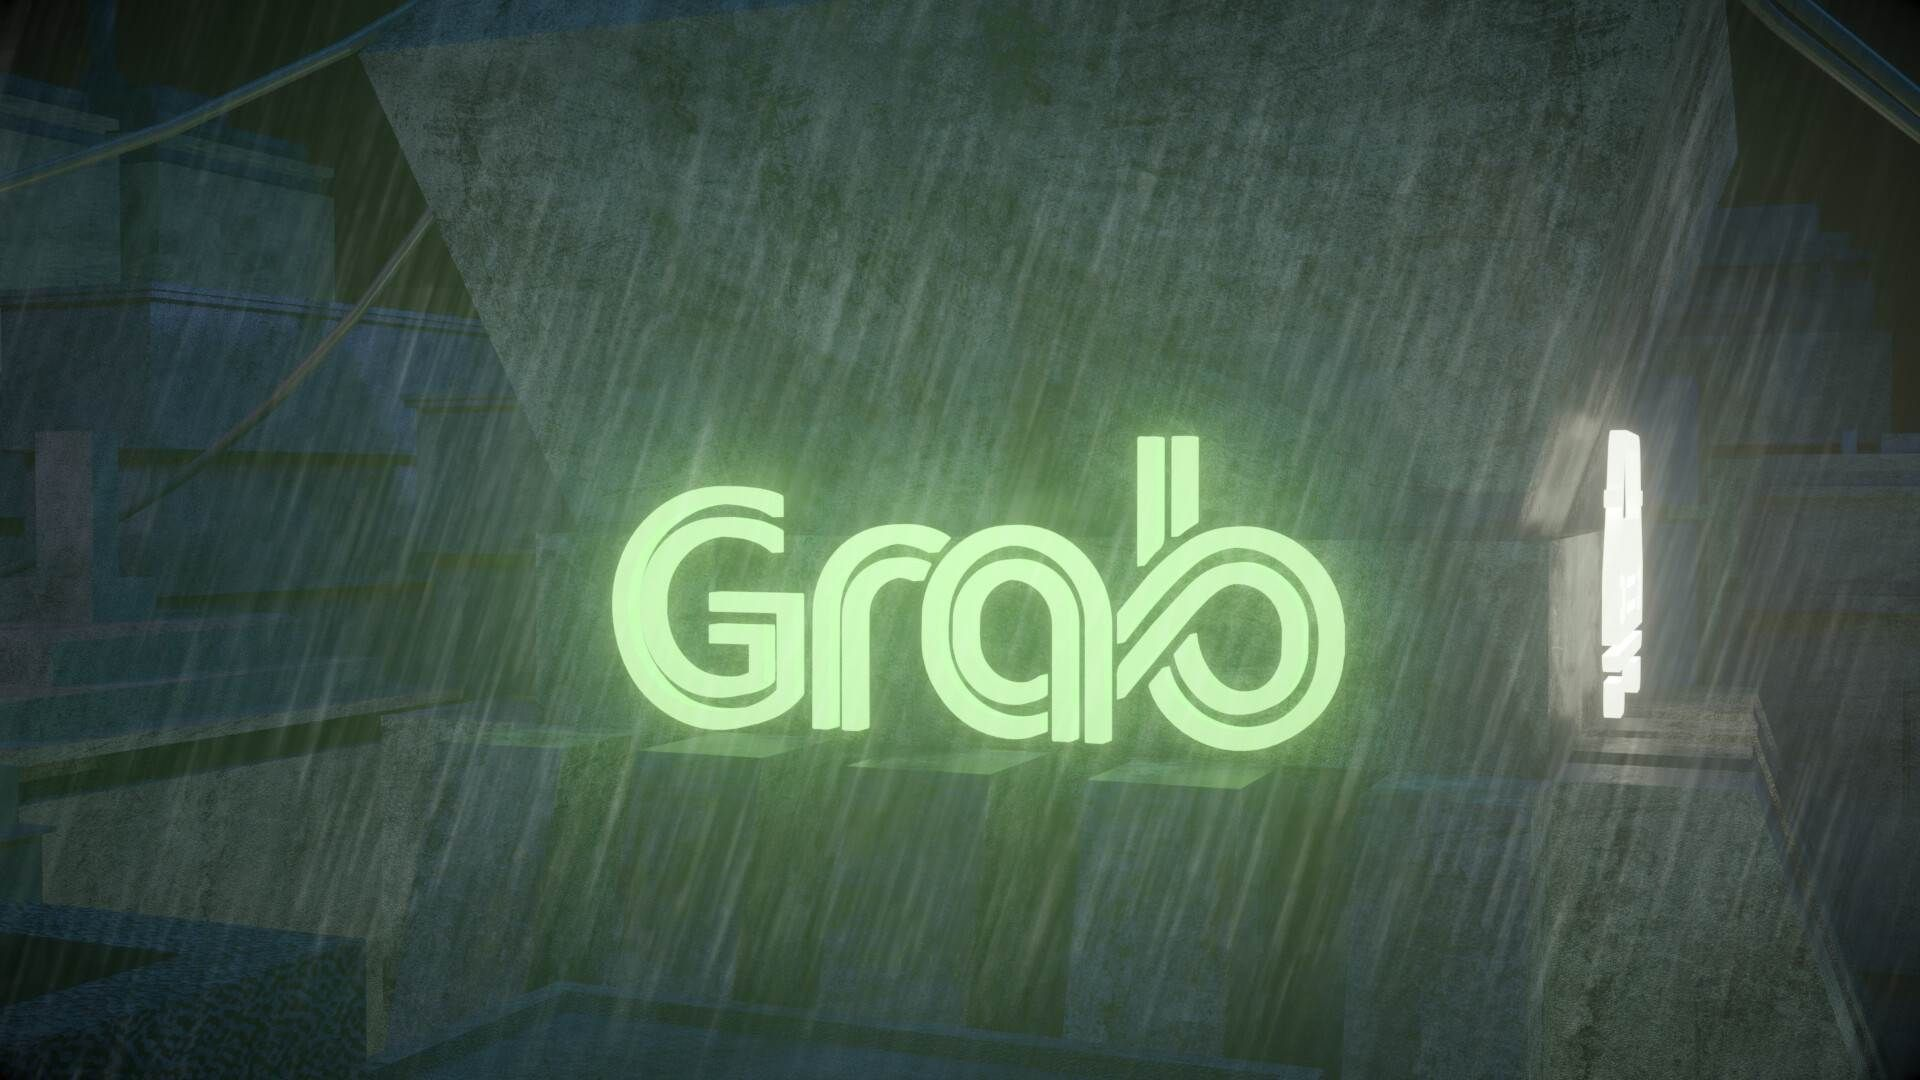 Grab Is Raising 856 Million From Mitsubishi Ufj Financial Group And Tis Inc Techgraph Financial Sustainable Business Wealth Management